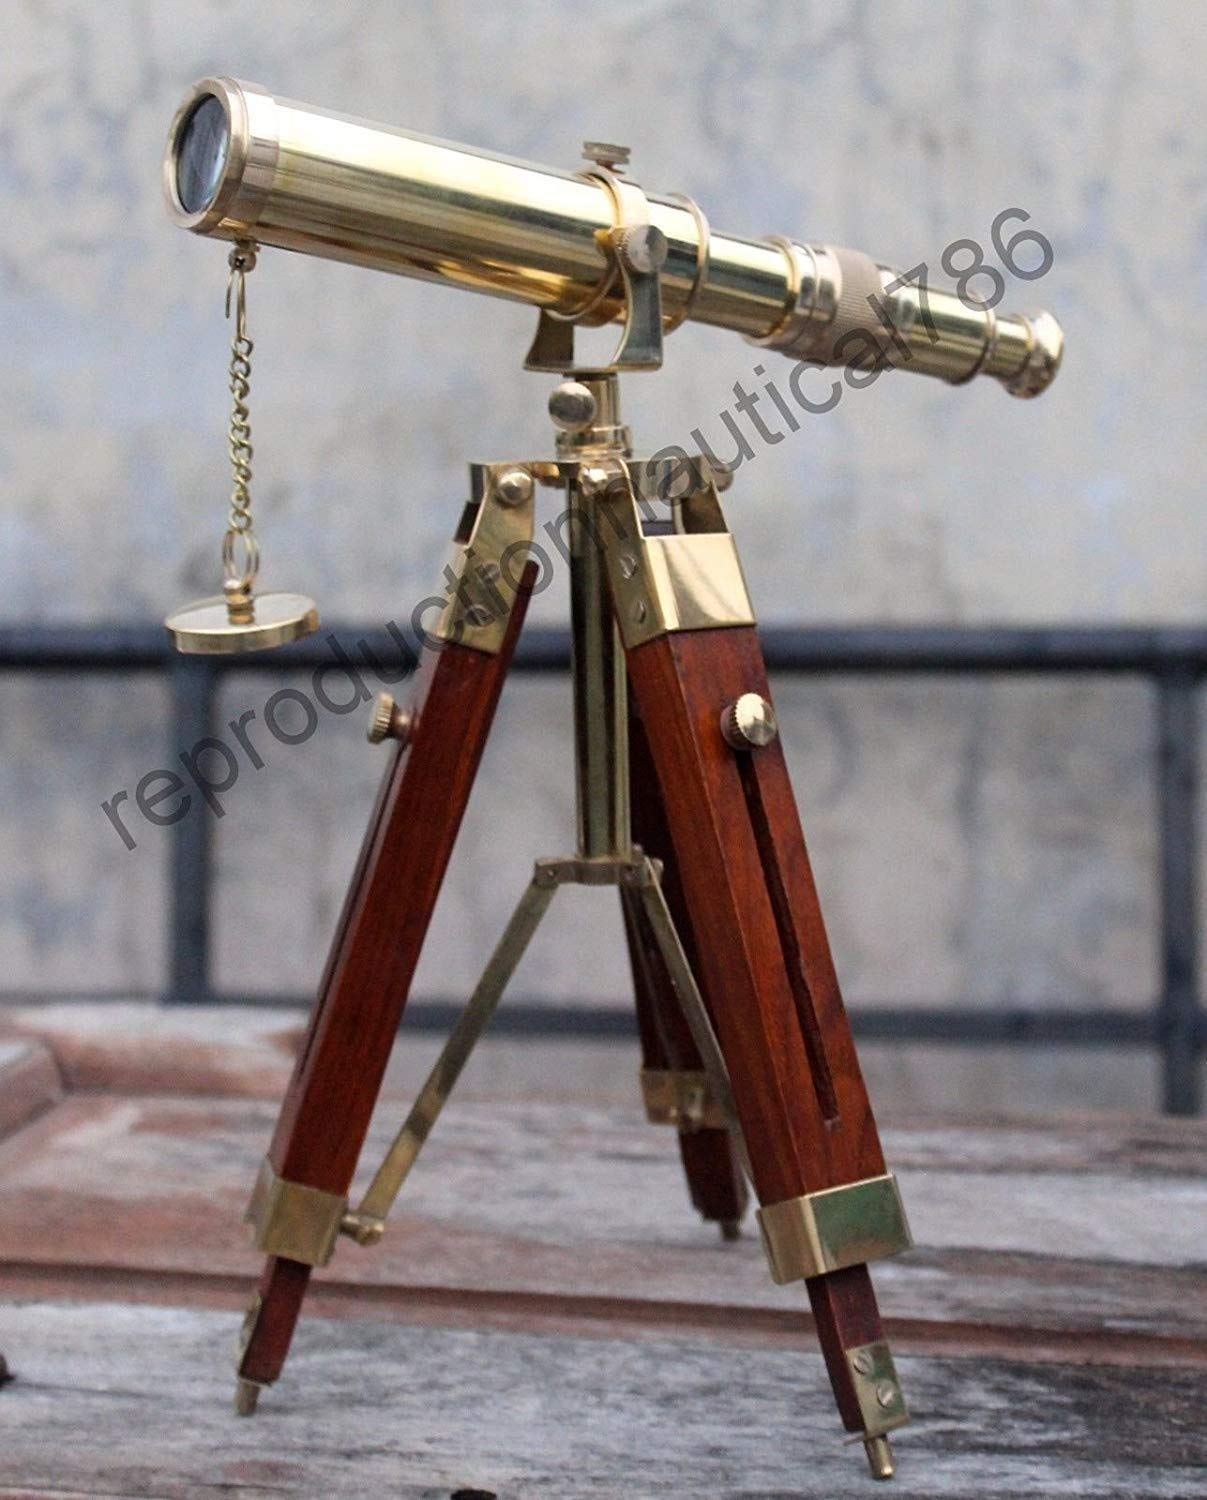 Arsh Nautical Antique Royal Navy Brass Nautical Gold Telescope with Adjustable Wood Tripod Stand